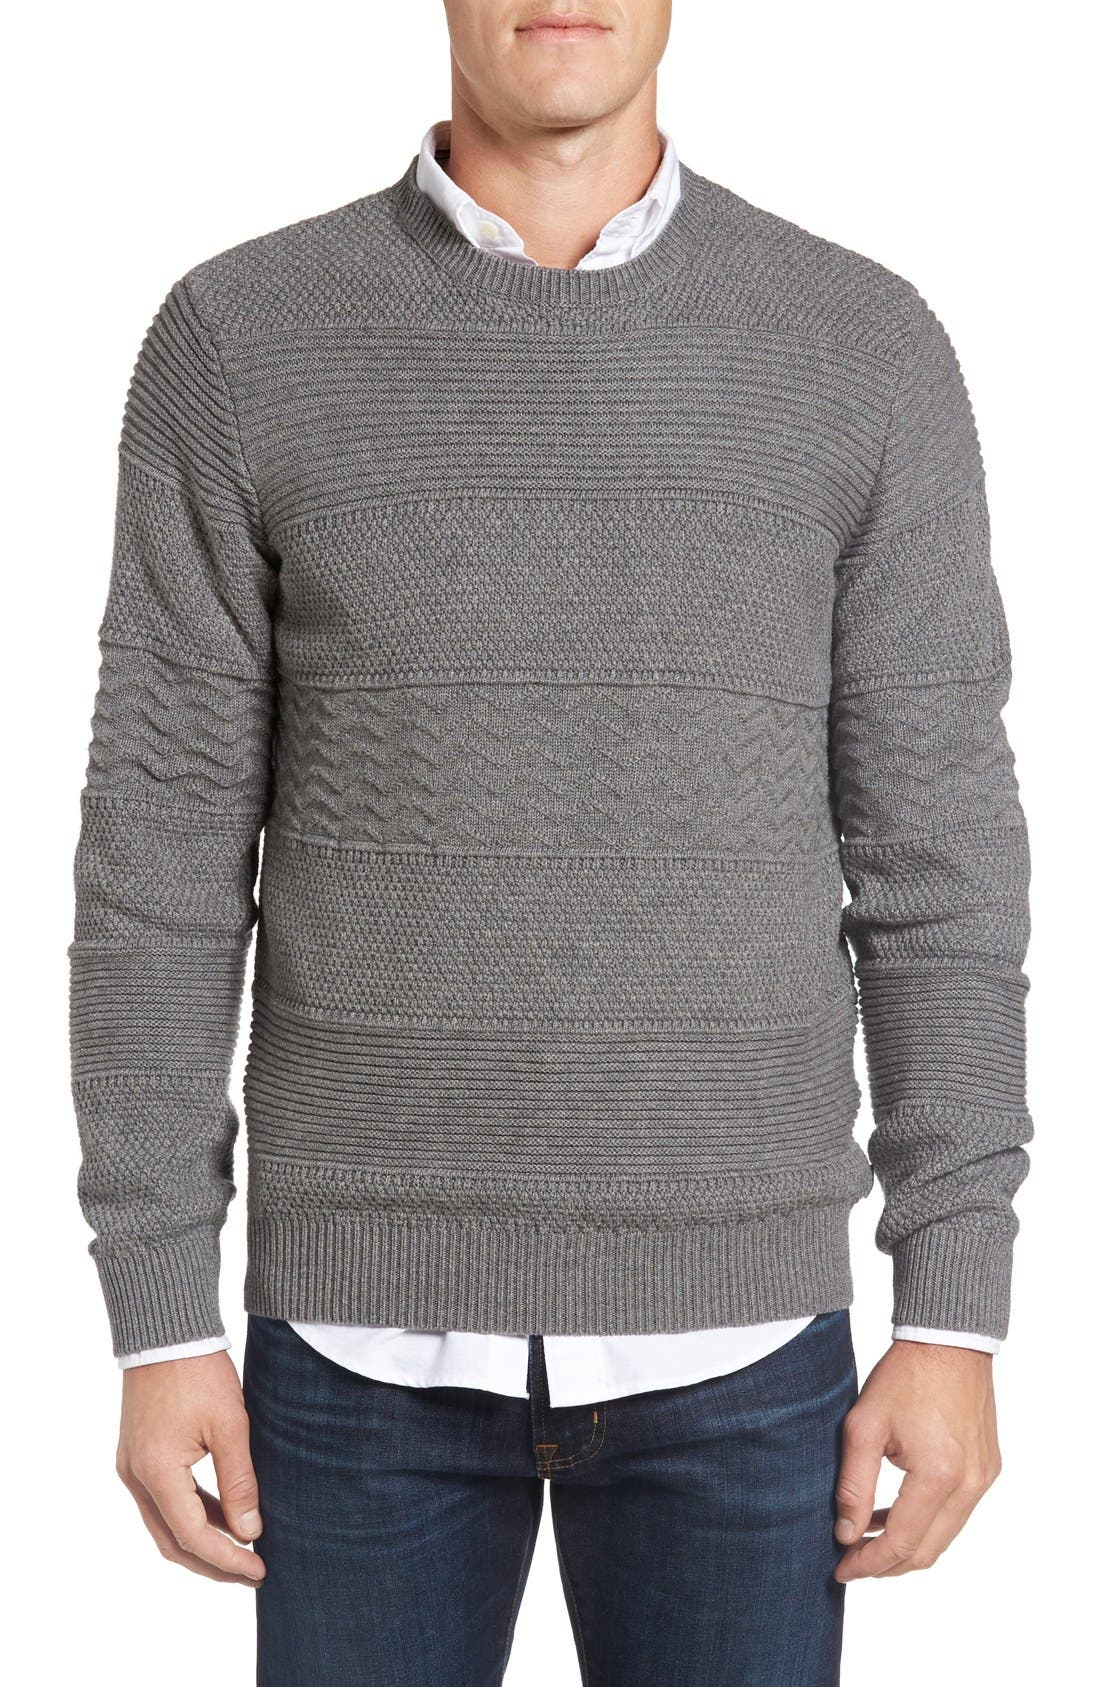 Structure Crewneck Sweater,                         Main,                         color, Grey Melange